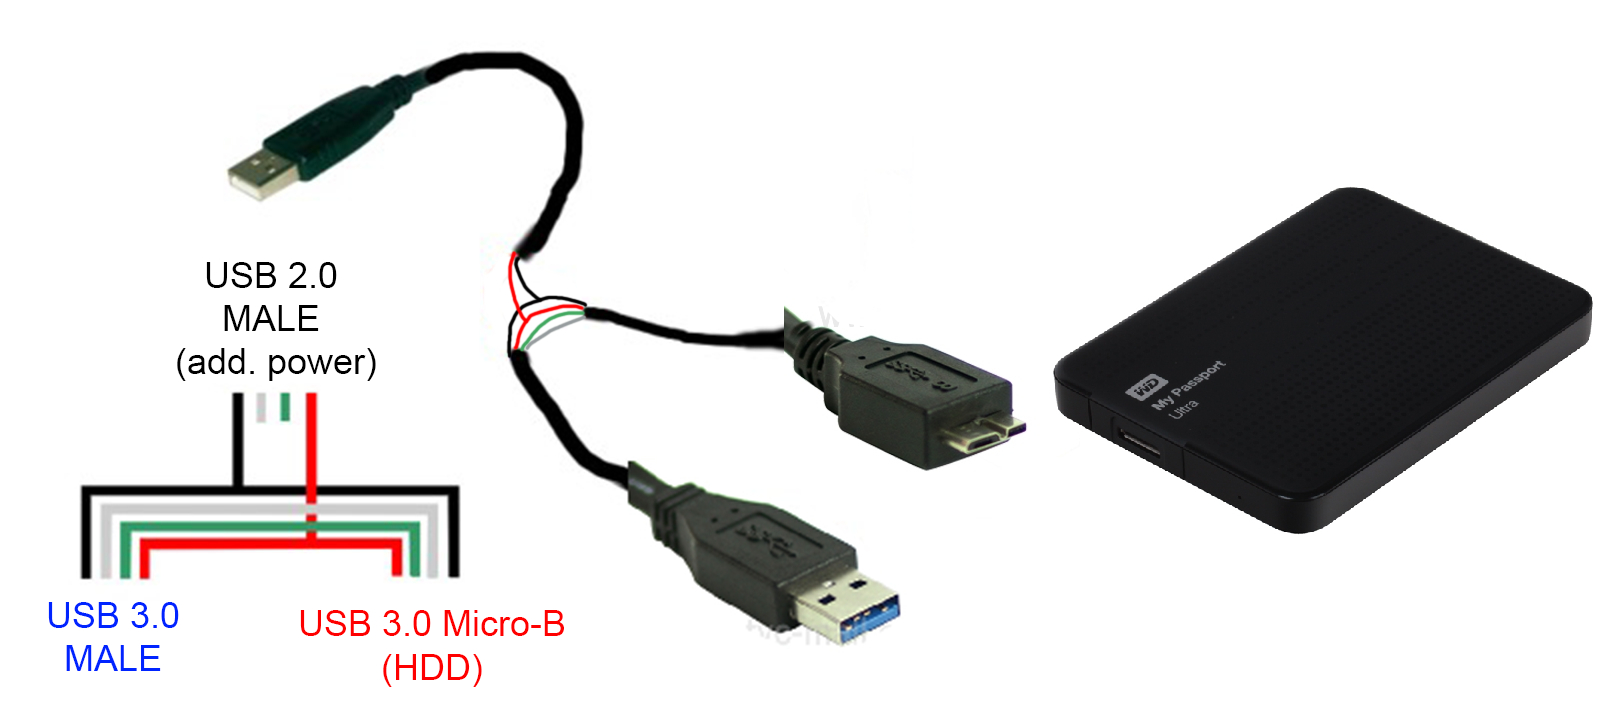 Soldering A Usb 3.0 Micro-B Y-Cable - Hardware & Software - Usb 3.0 Cable Wiring Diagram